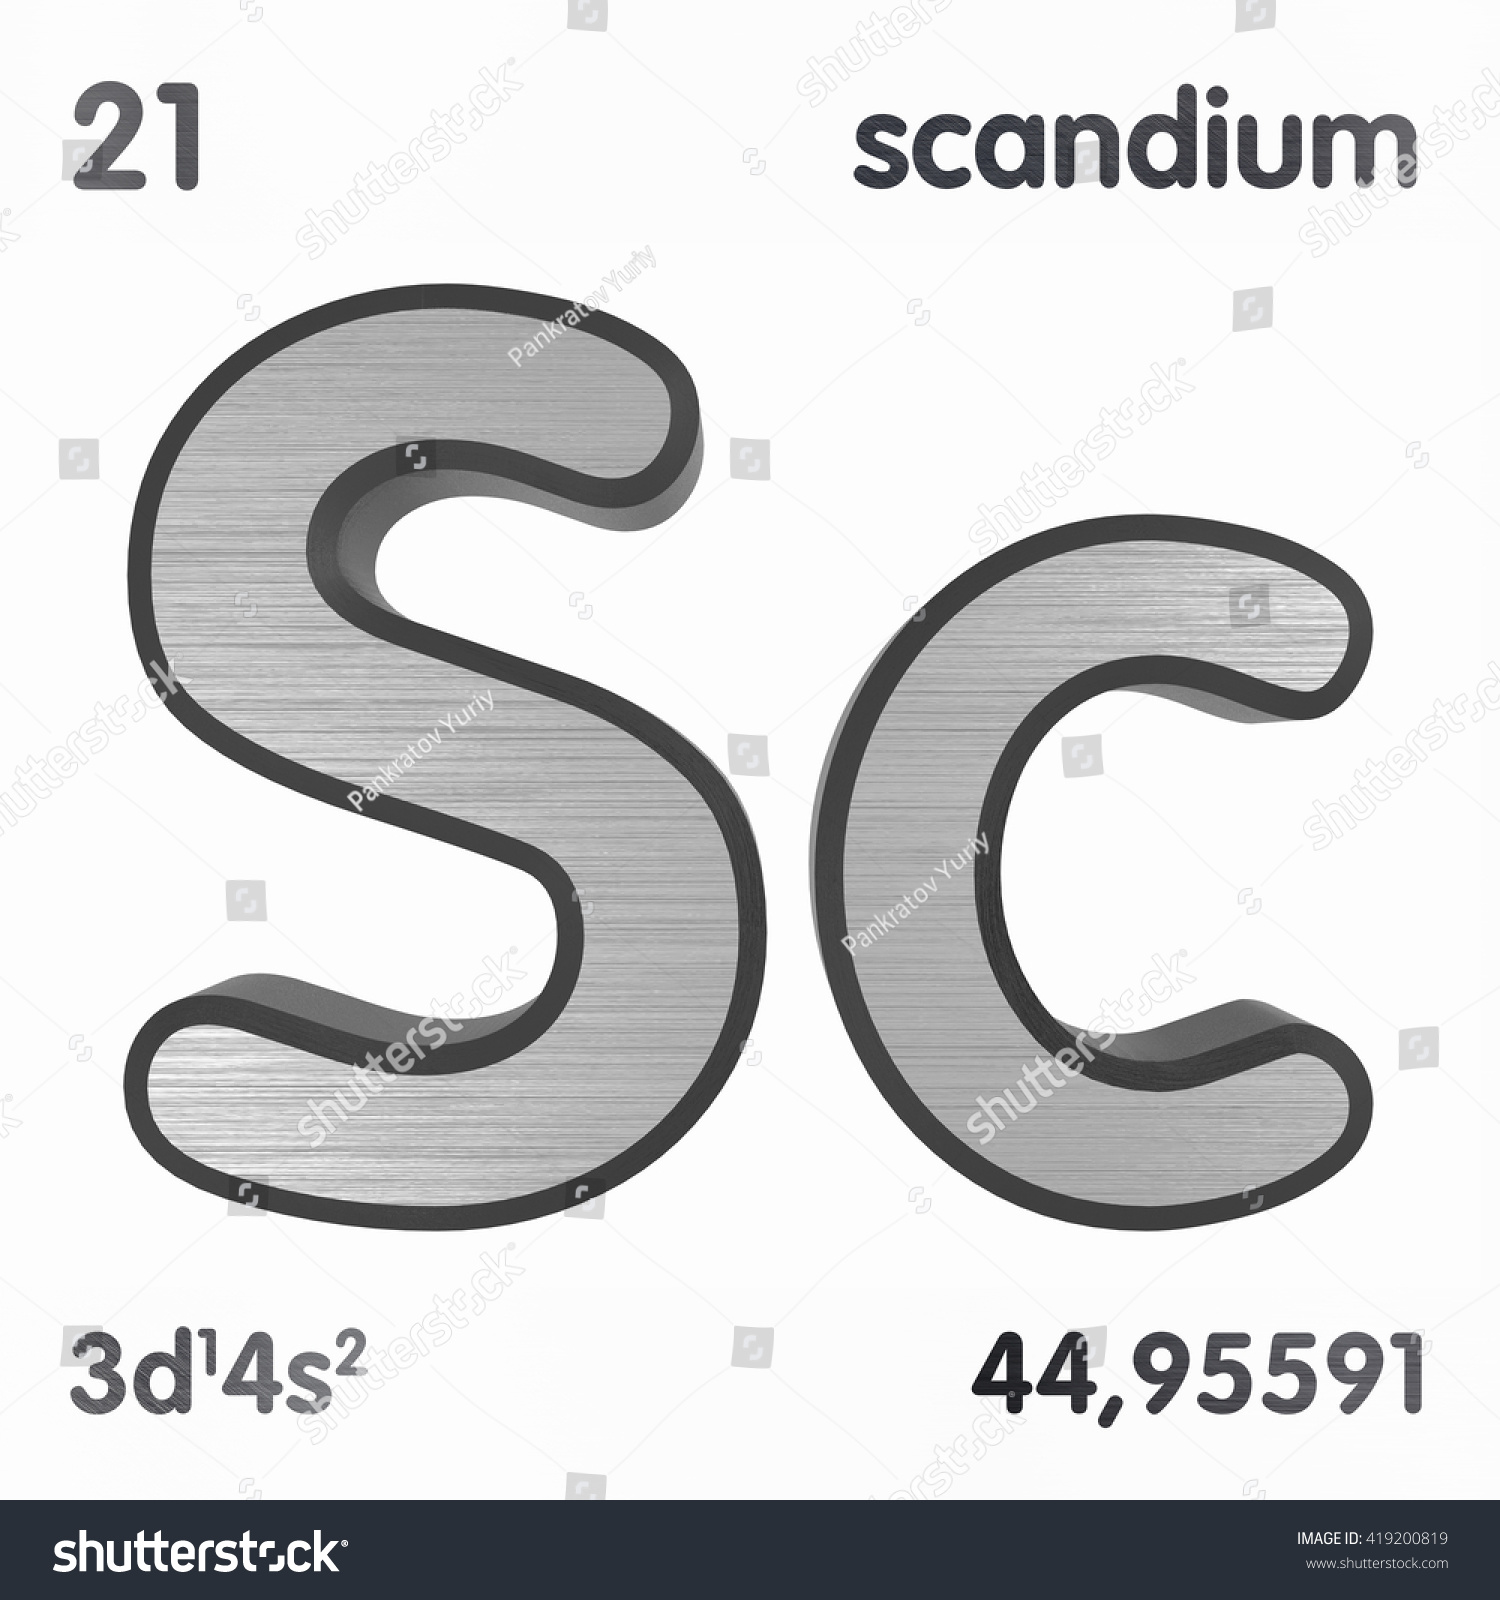 Periodic table elements scandium 3d title stock illustration periodic table of elements scandium 3d title isolated on white 3d rendering gamestrikefo Images